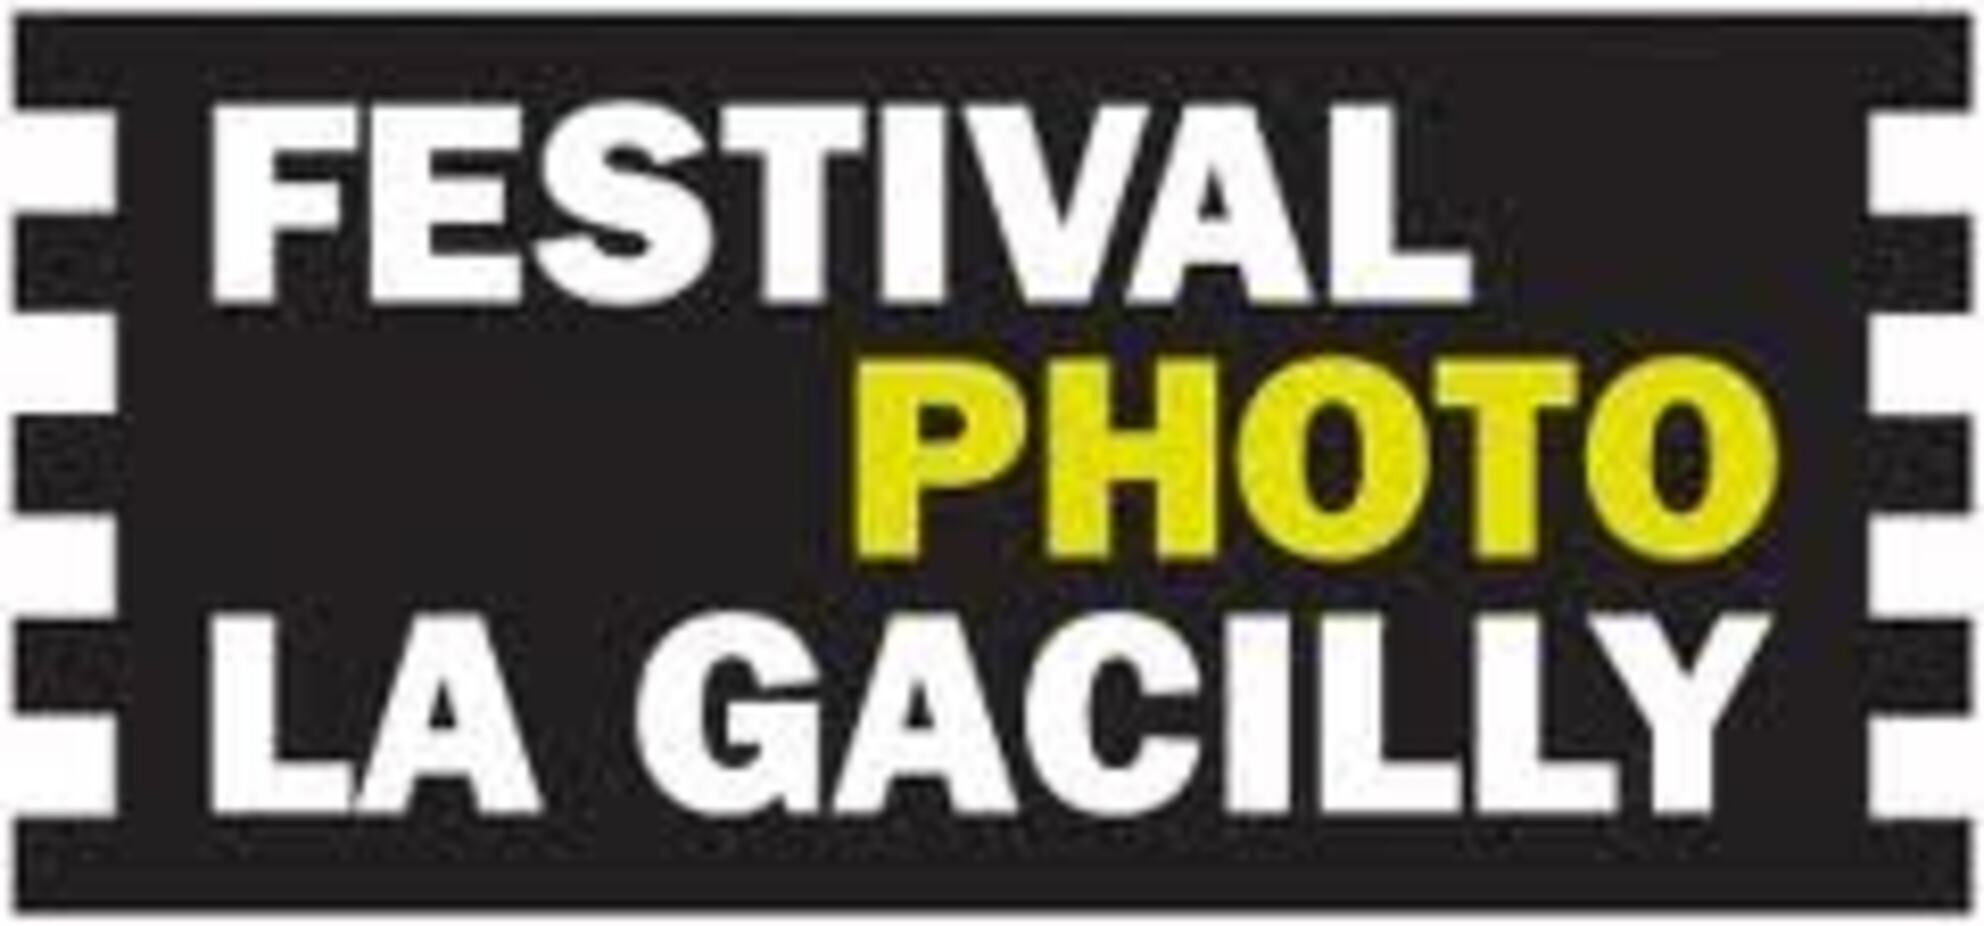 EXPOSITION PHOTO 2013 LA GACILLY 56 28/09/2013